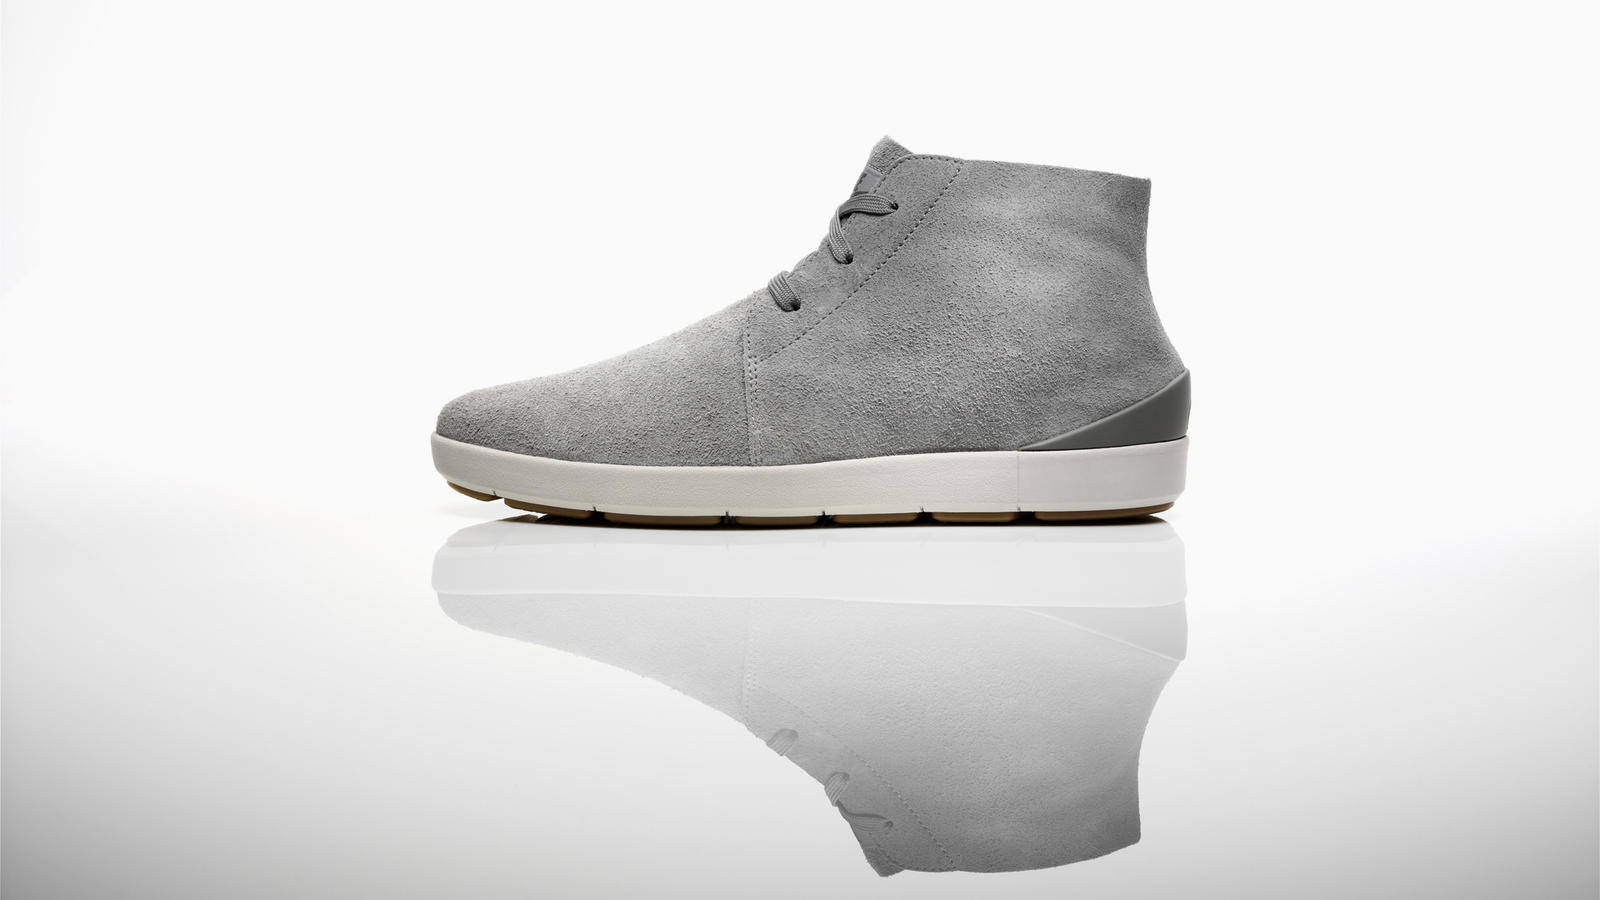 finest selection 01483 1e0b4 NIKE AIR RALSTON MID LITE